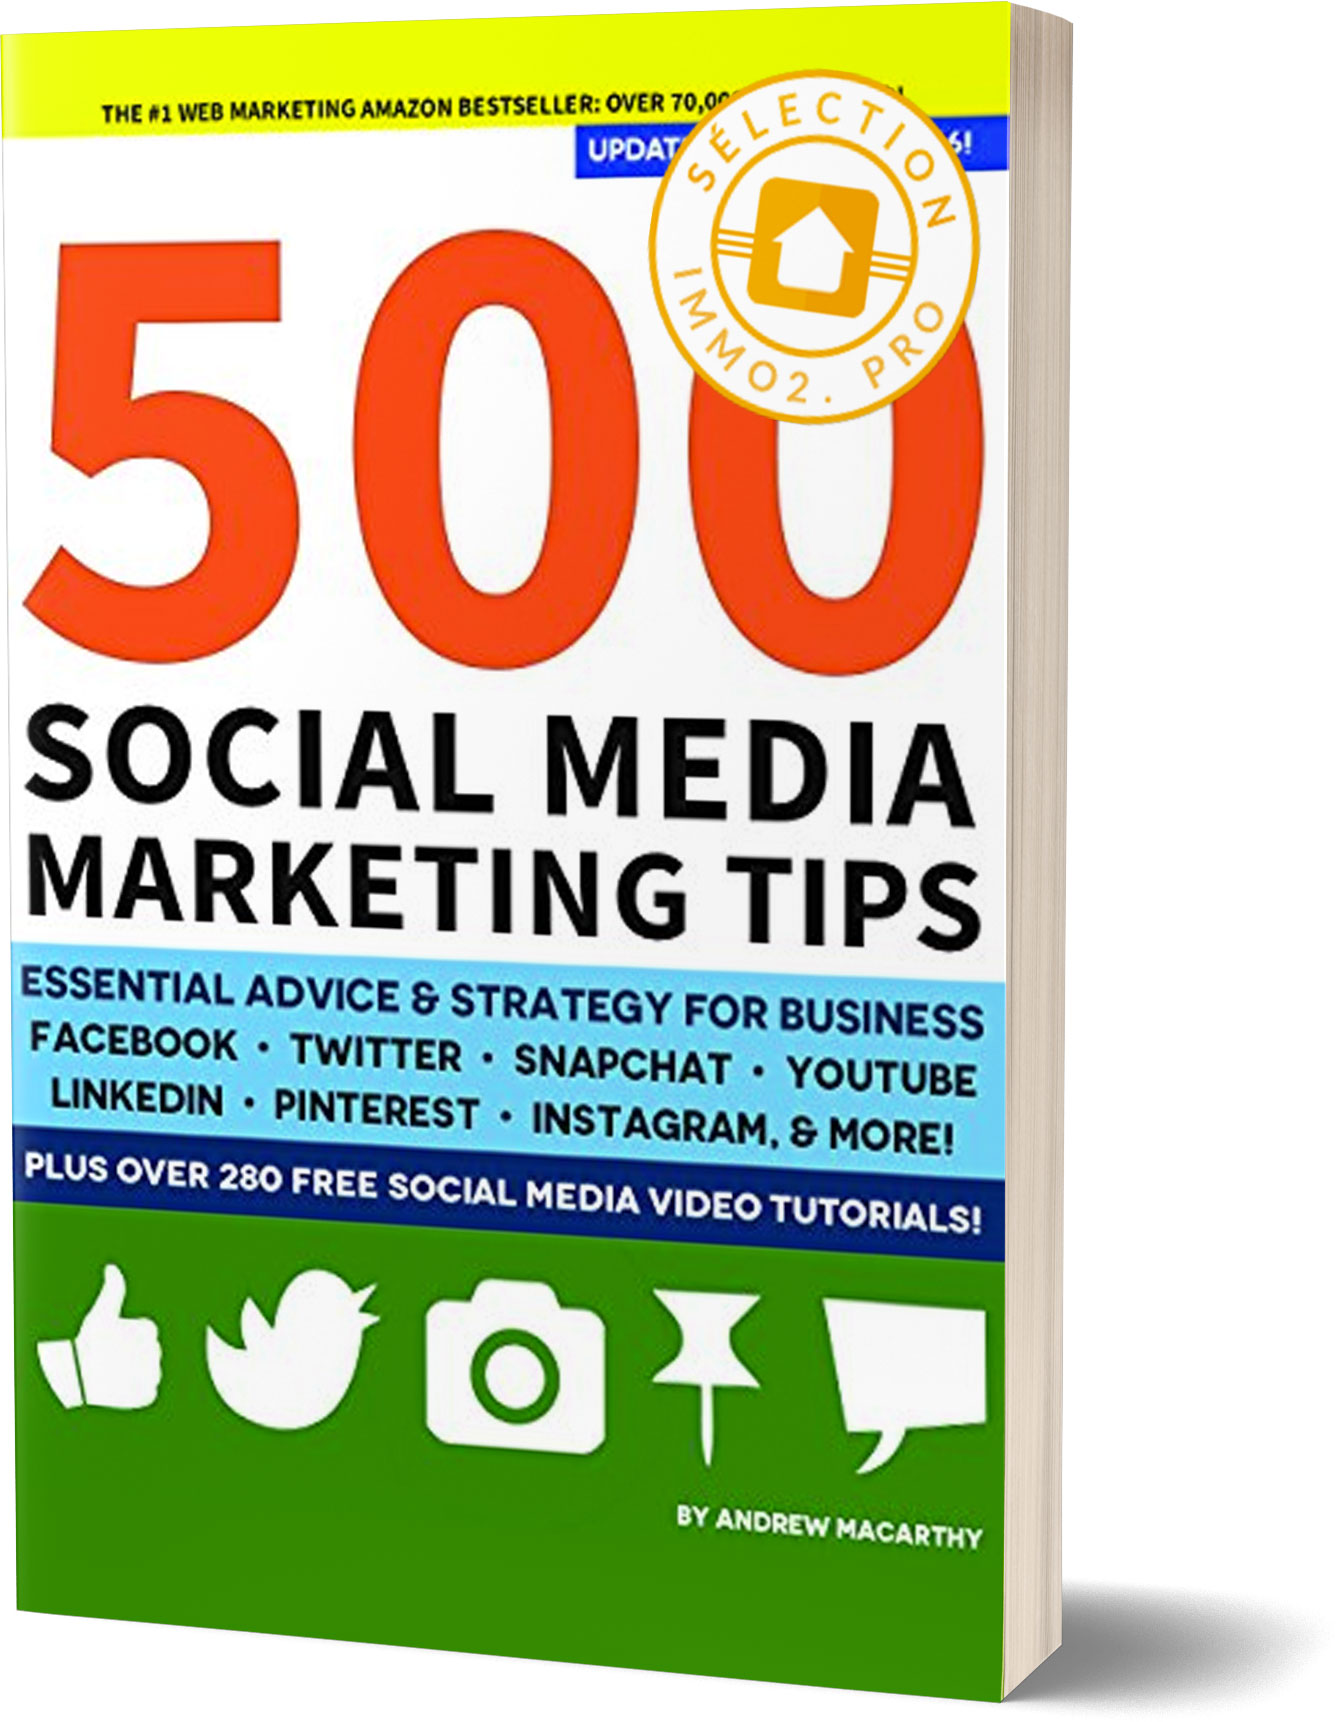 500-social-media-marketing-tips